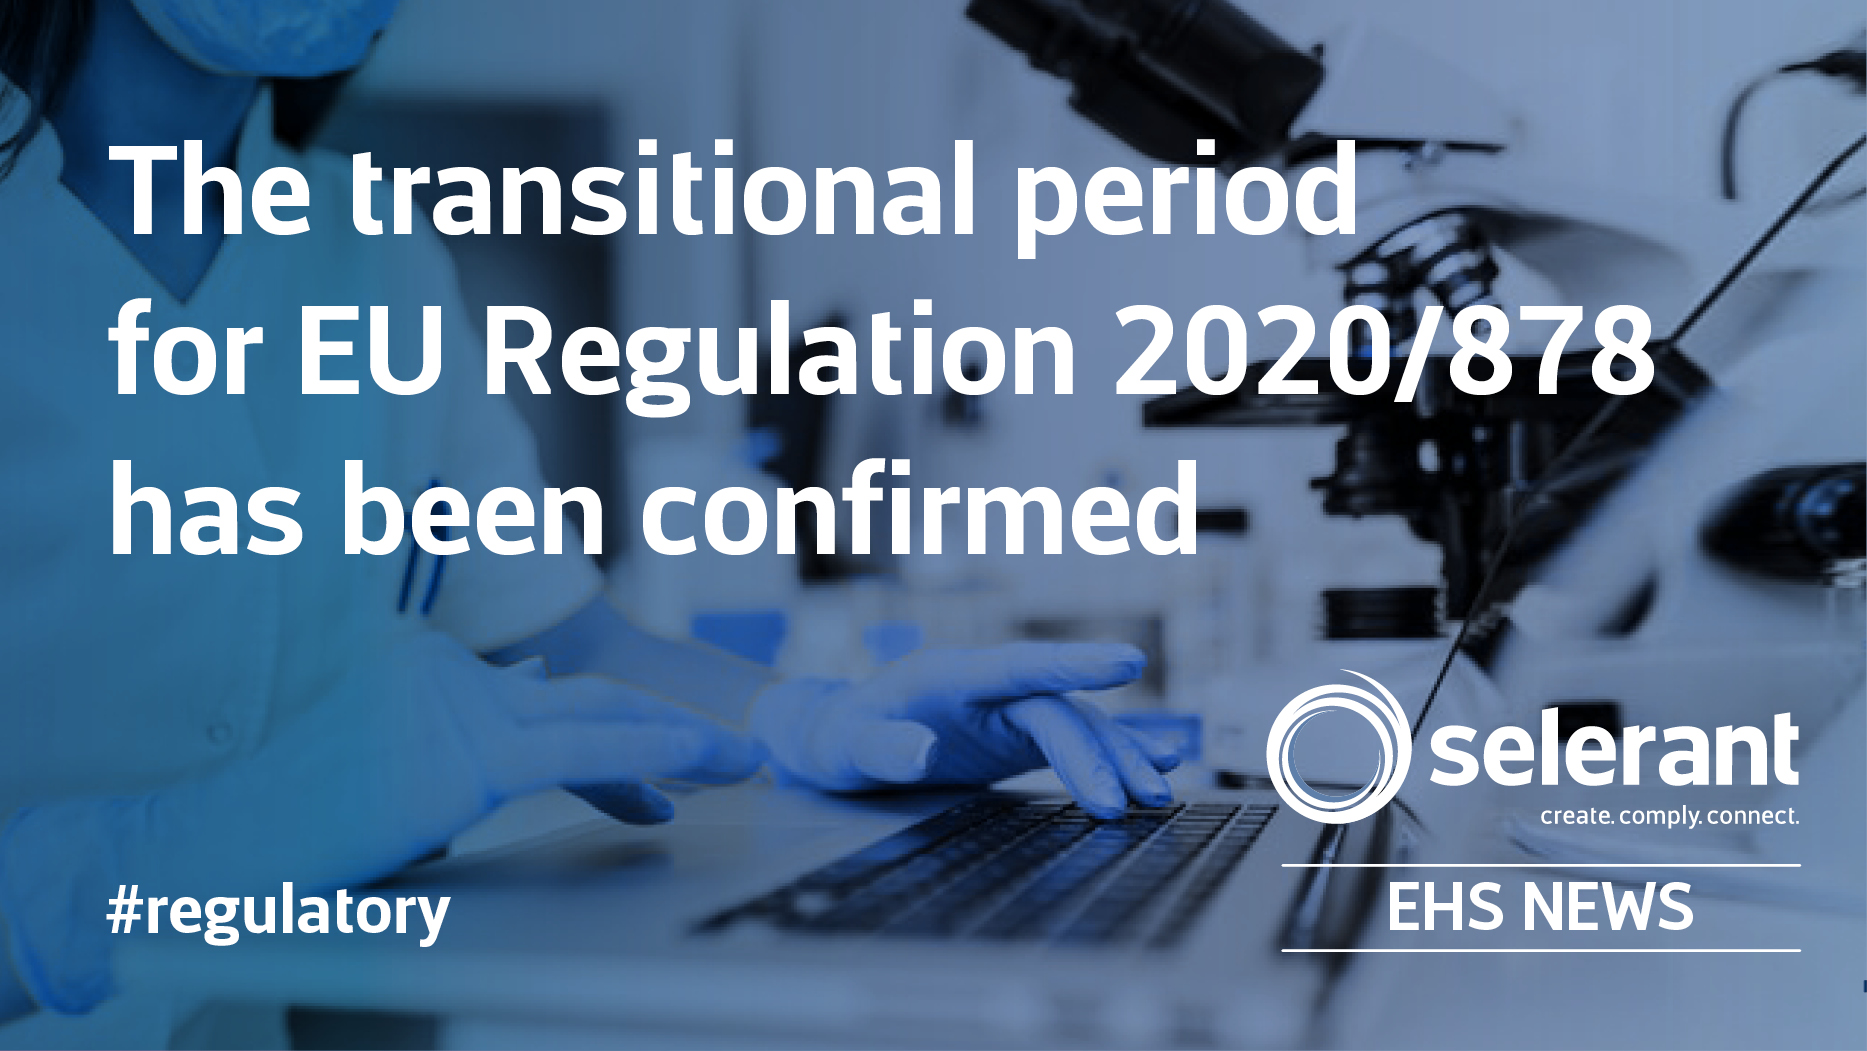 Europe: The transitional period for EU Regulation 2020/878 has been confirmed